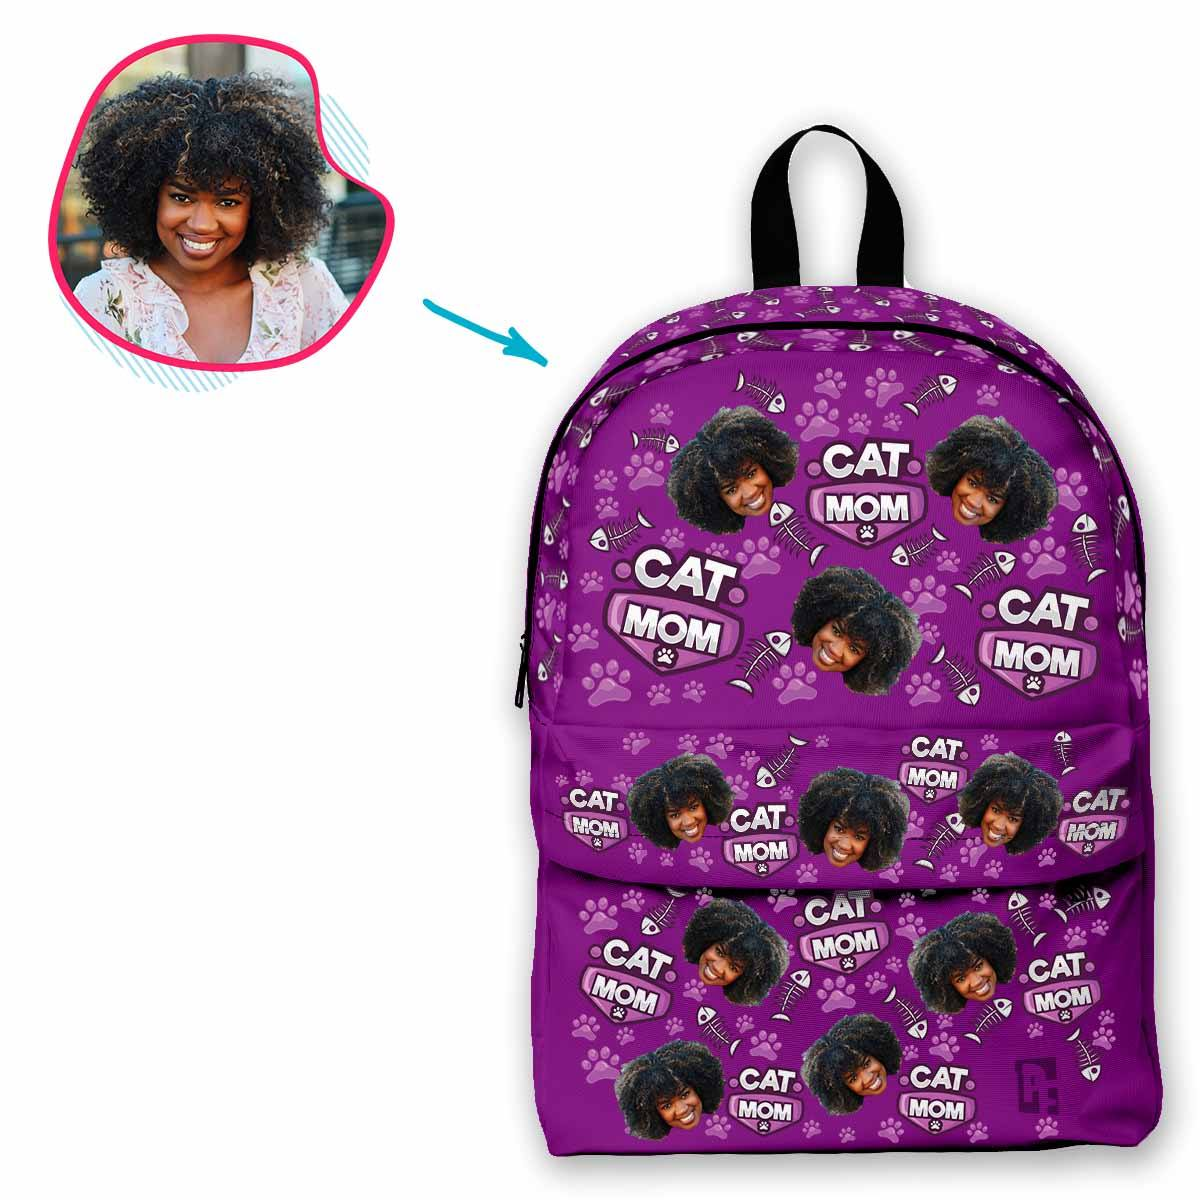 purple Cat Mom classic backpack personalized with photo of face printed on it